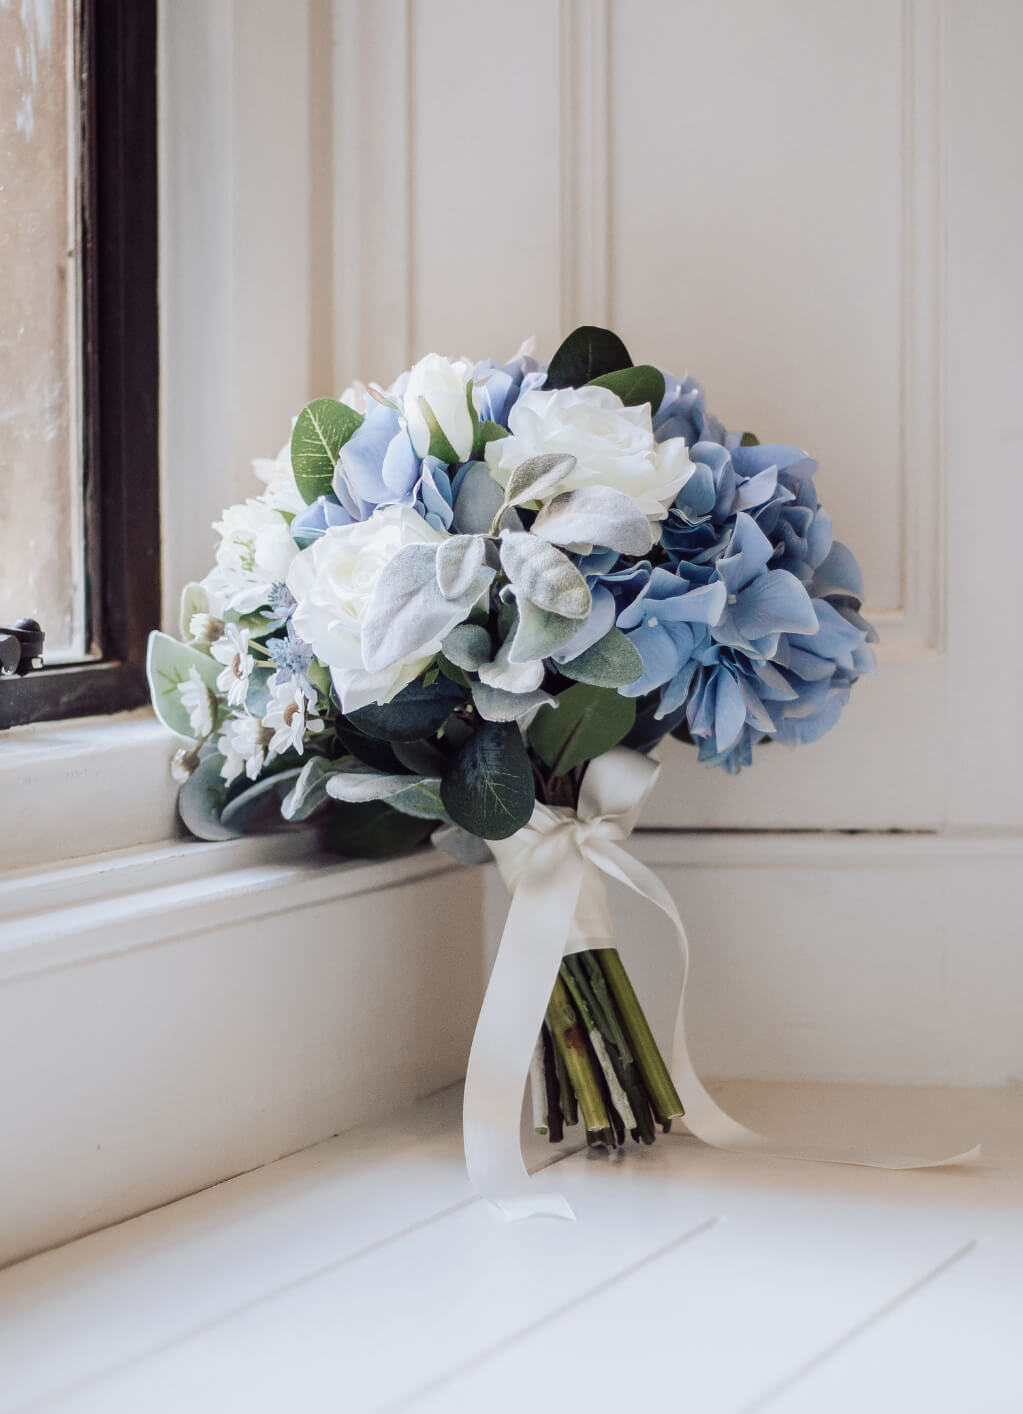 A beautiful blue and white wedding bouquet leaning against a window sill.